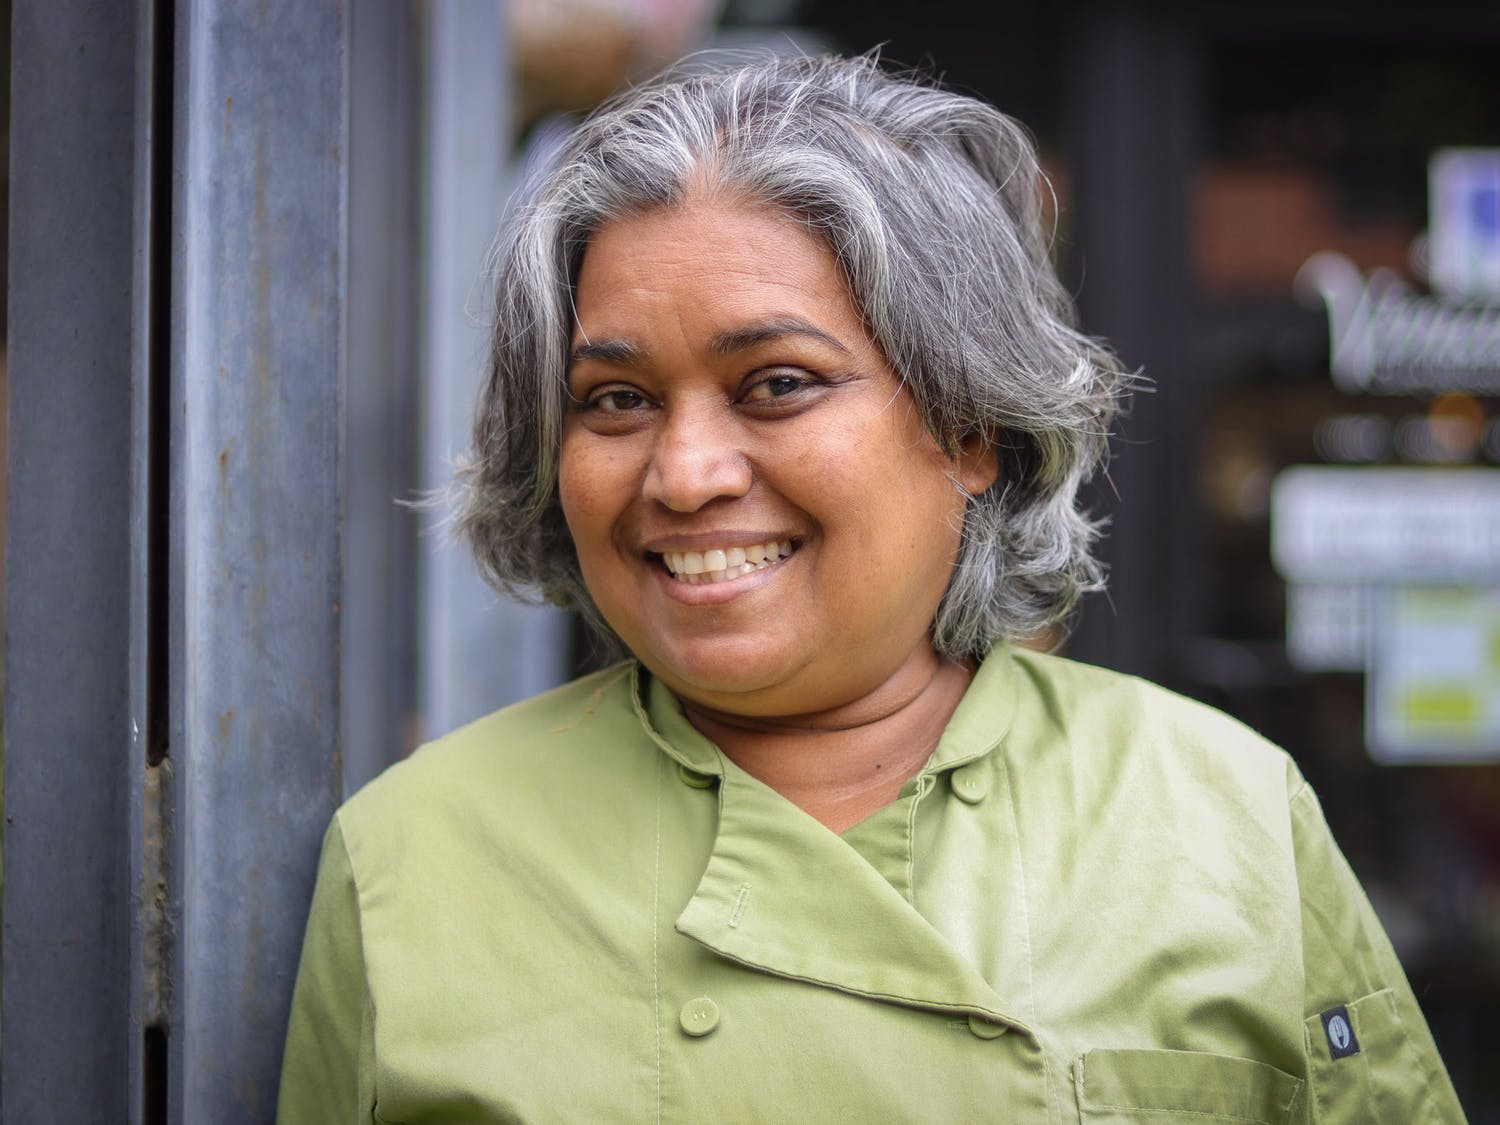 Vimala Rajendran is the chef and founder of Vimala's Curryblossom Café in downtown Chapel Hill. She poses outside of her restaurant on Monday, April 19.